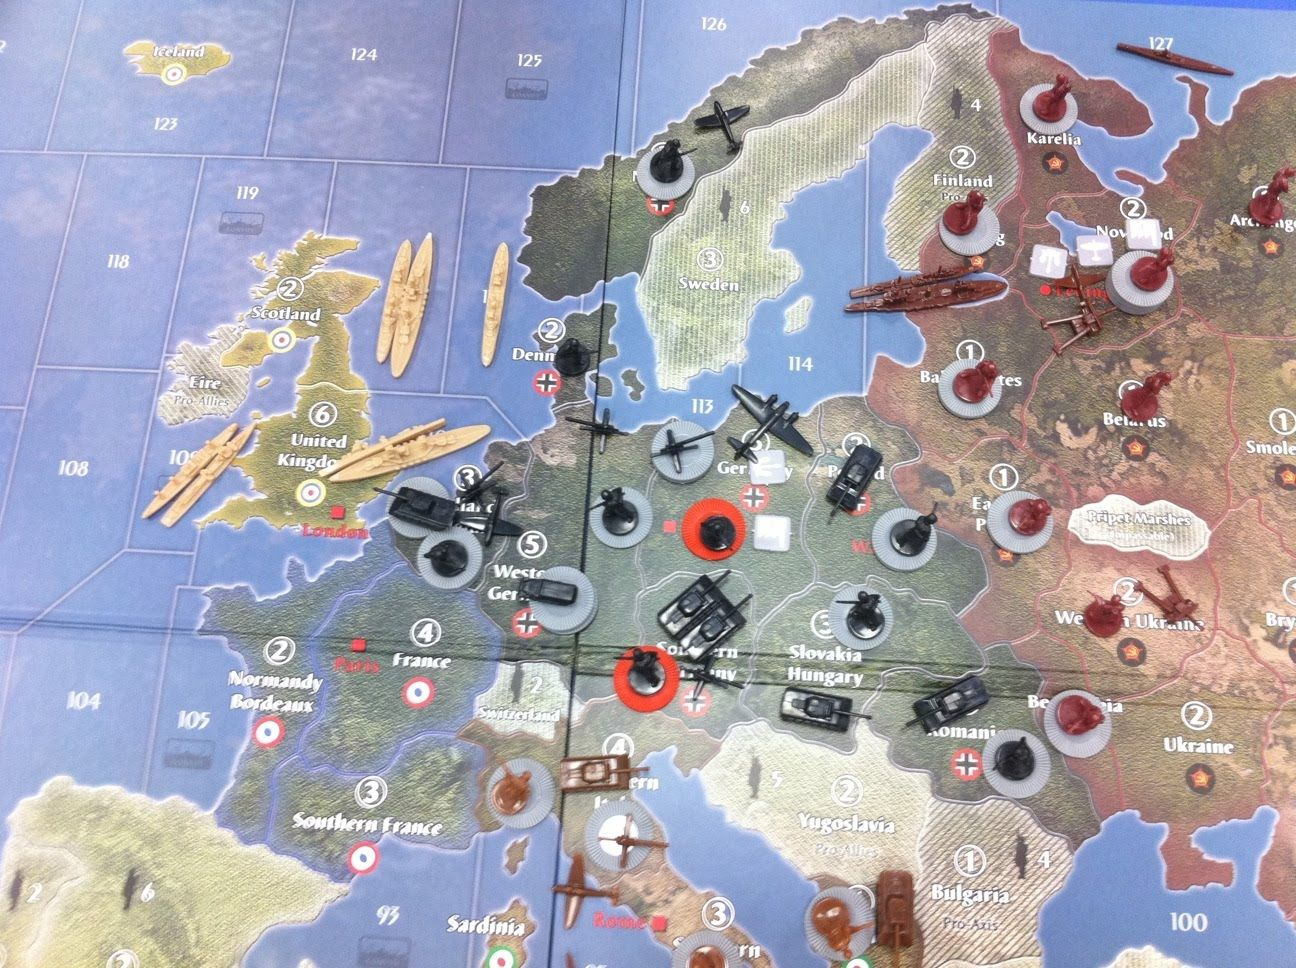 battle strategies of wwi This is a list of military engagements of world war i which encompasses land, naval, and air engagements as well as campaigns, operations, defensive lines and sieges the pre-war french strategy expected german forces in the area to be light.